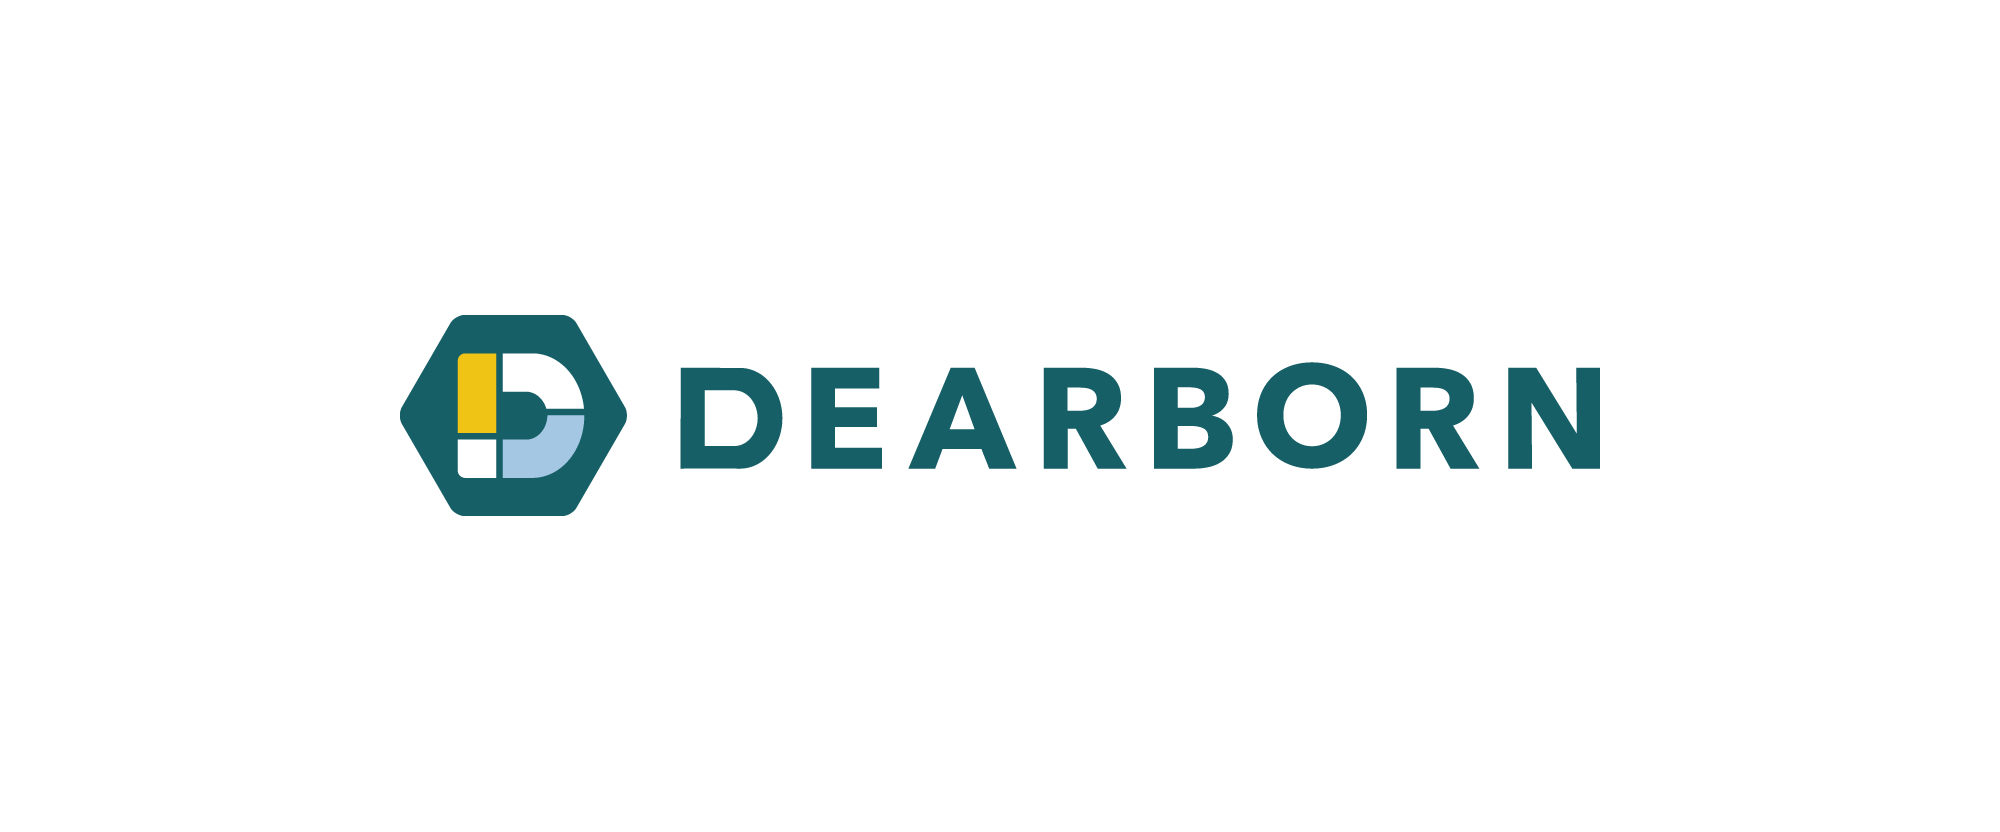 New Logo for City of Dearborn by Octane Design